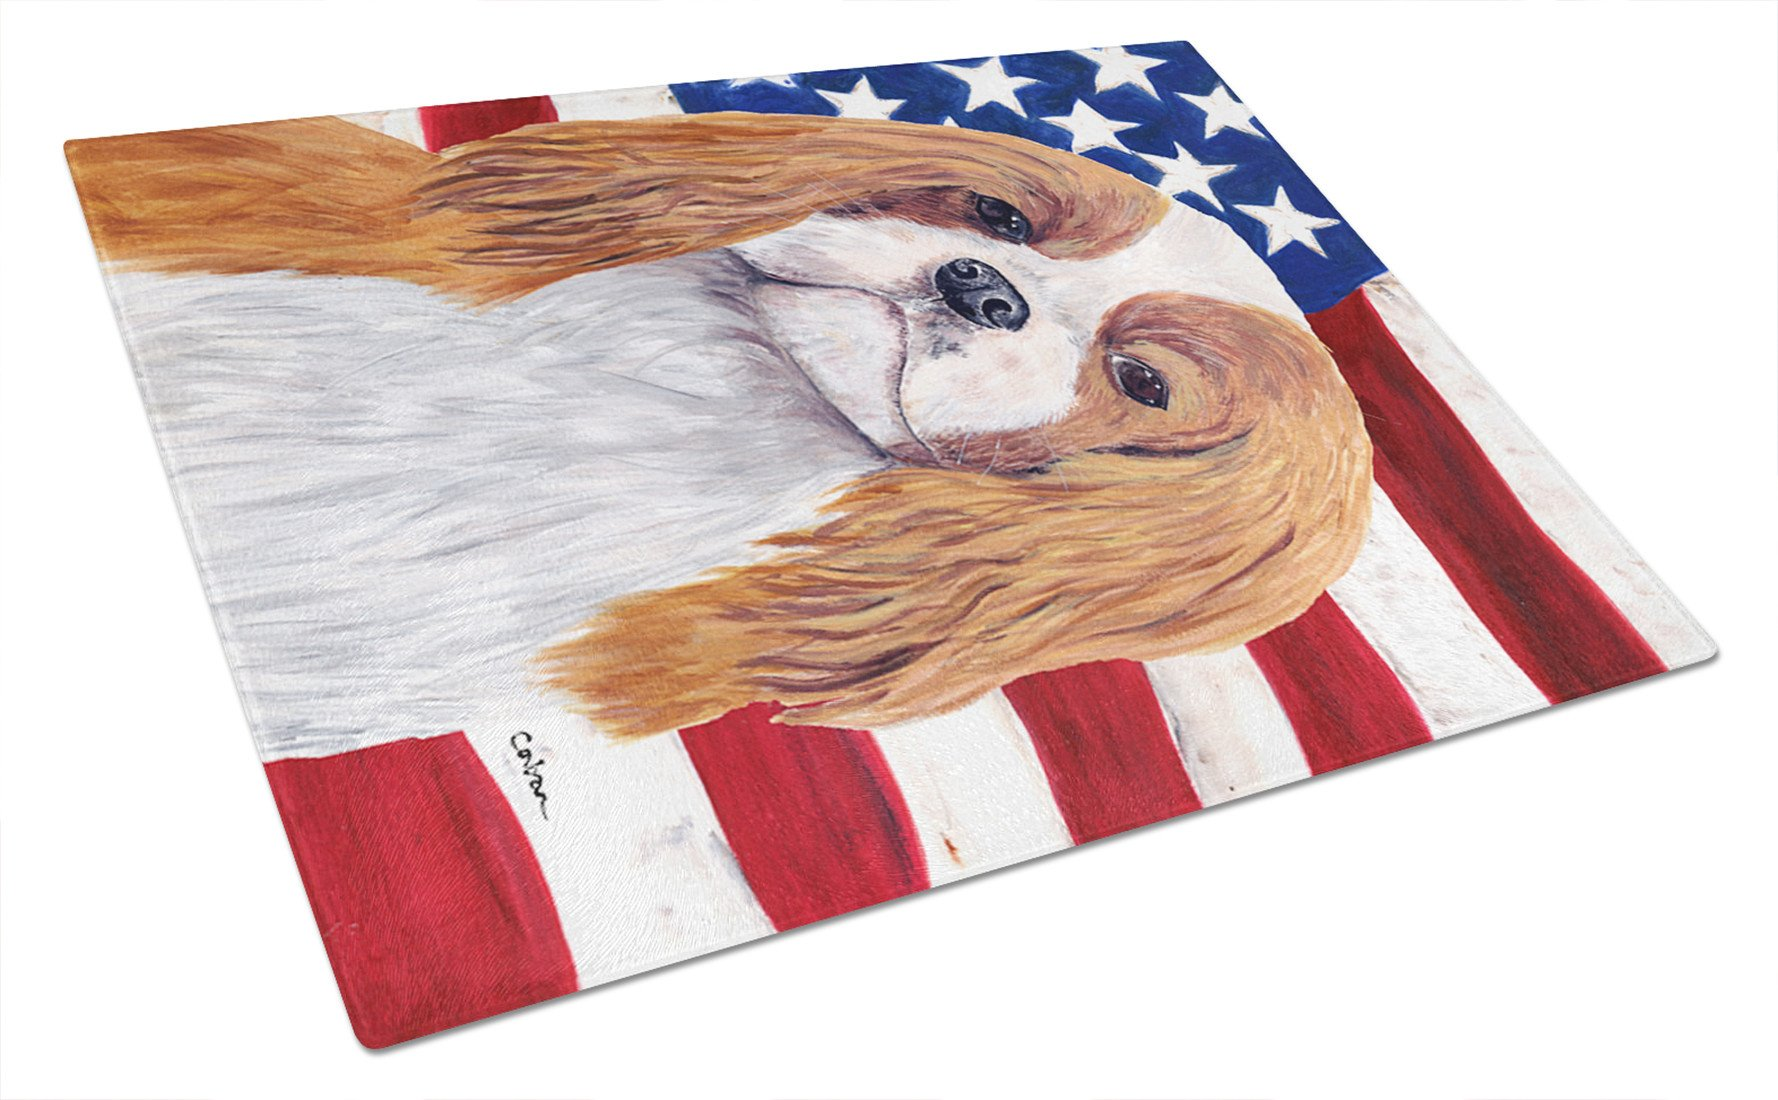 USA American Flag with Cavalier Spaniel Glass Cutting Board Large by Caroline's Treasures